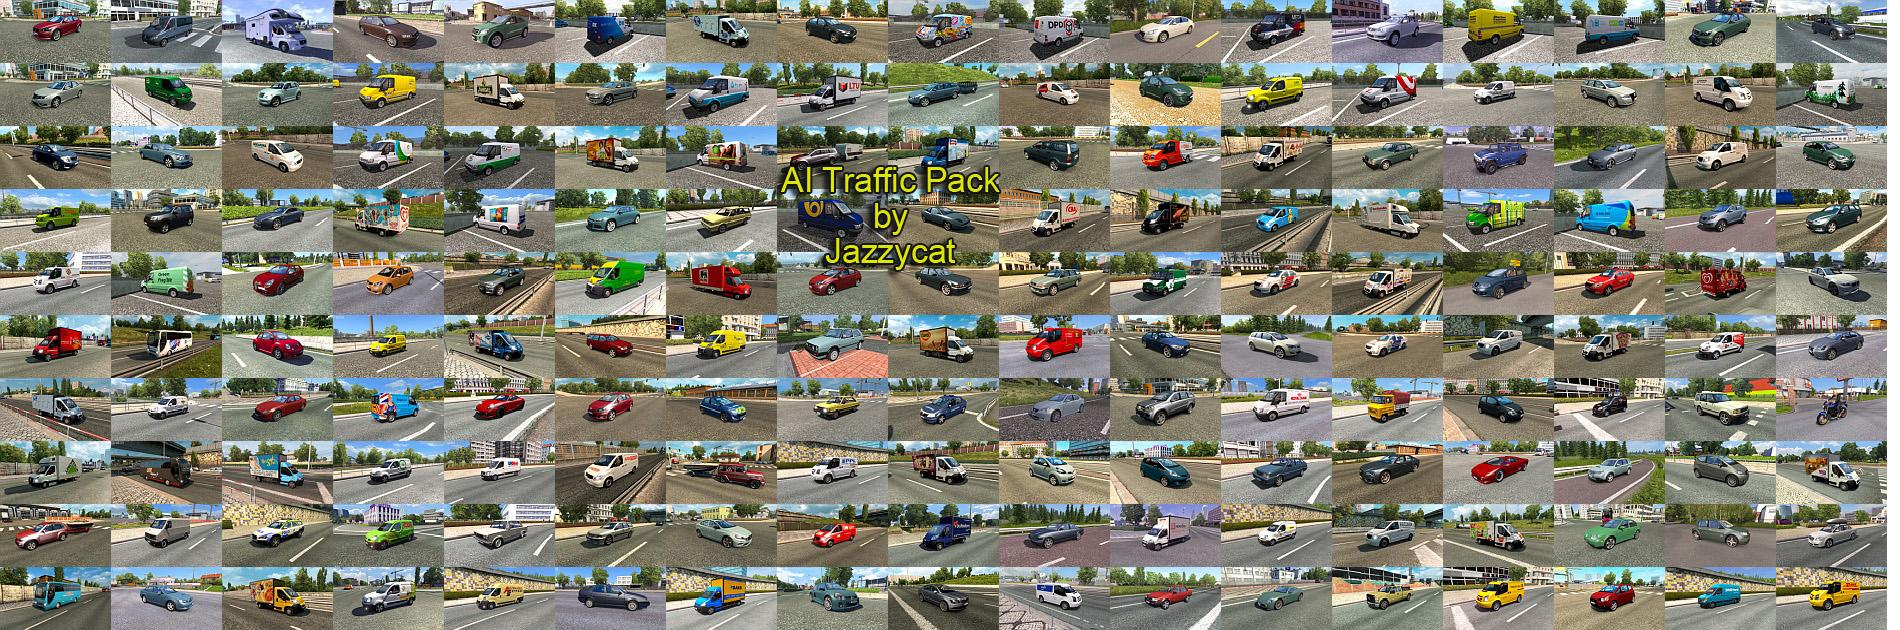 Ai Traffic Pack By Jazzycat V4 4 Ets2 Mods Euro Truck Simulator 2 Mods Ets2mods Lt